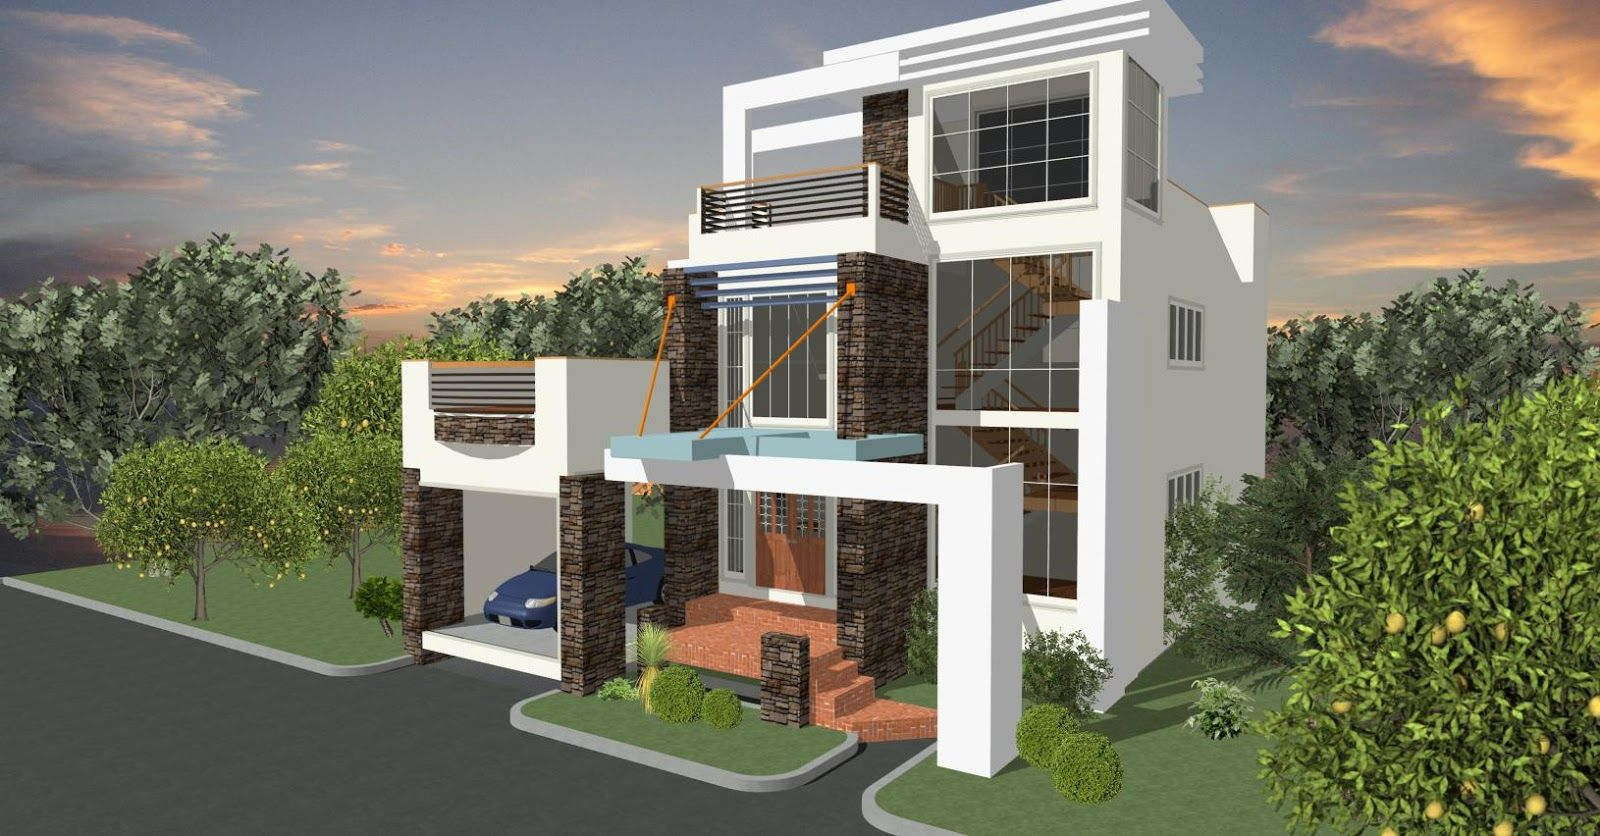 Model house design in the philippines house plans and ideas